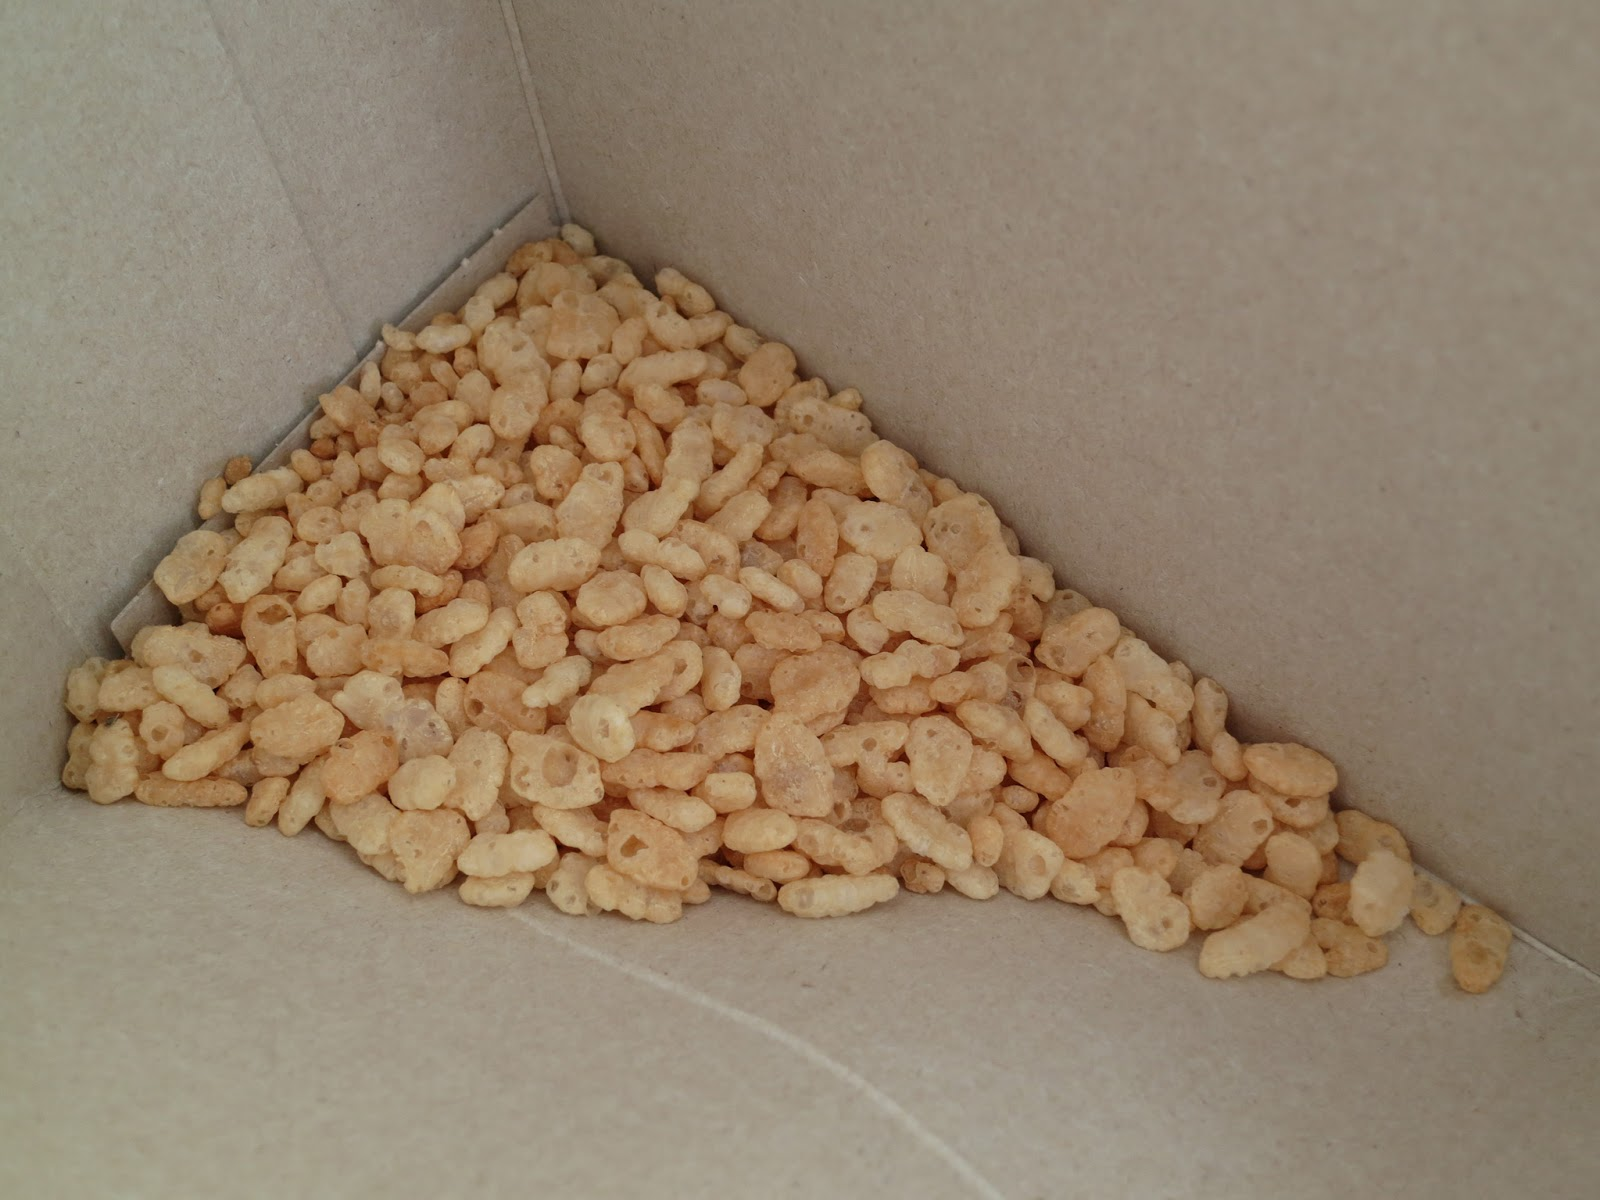 Rice Krispies left in a corner of the box